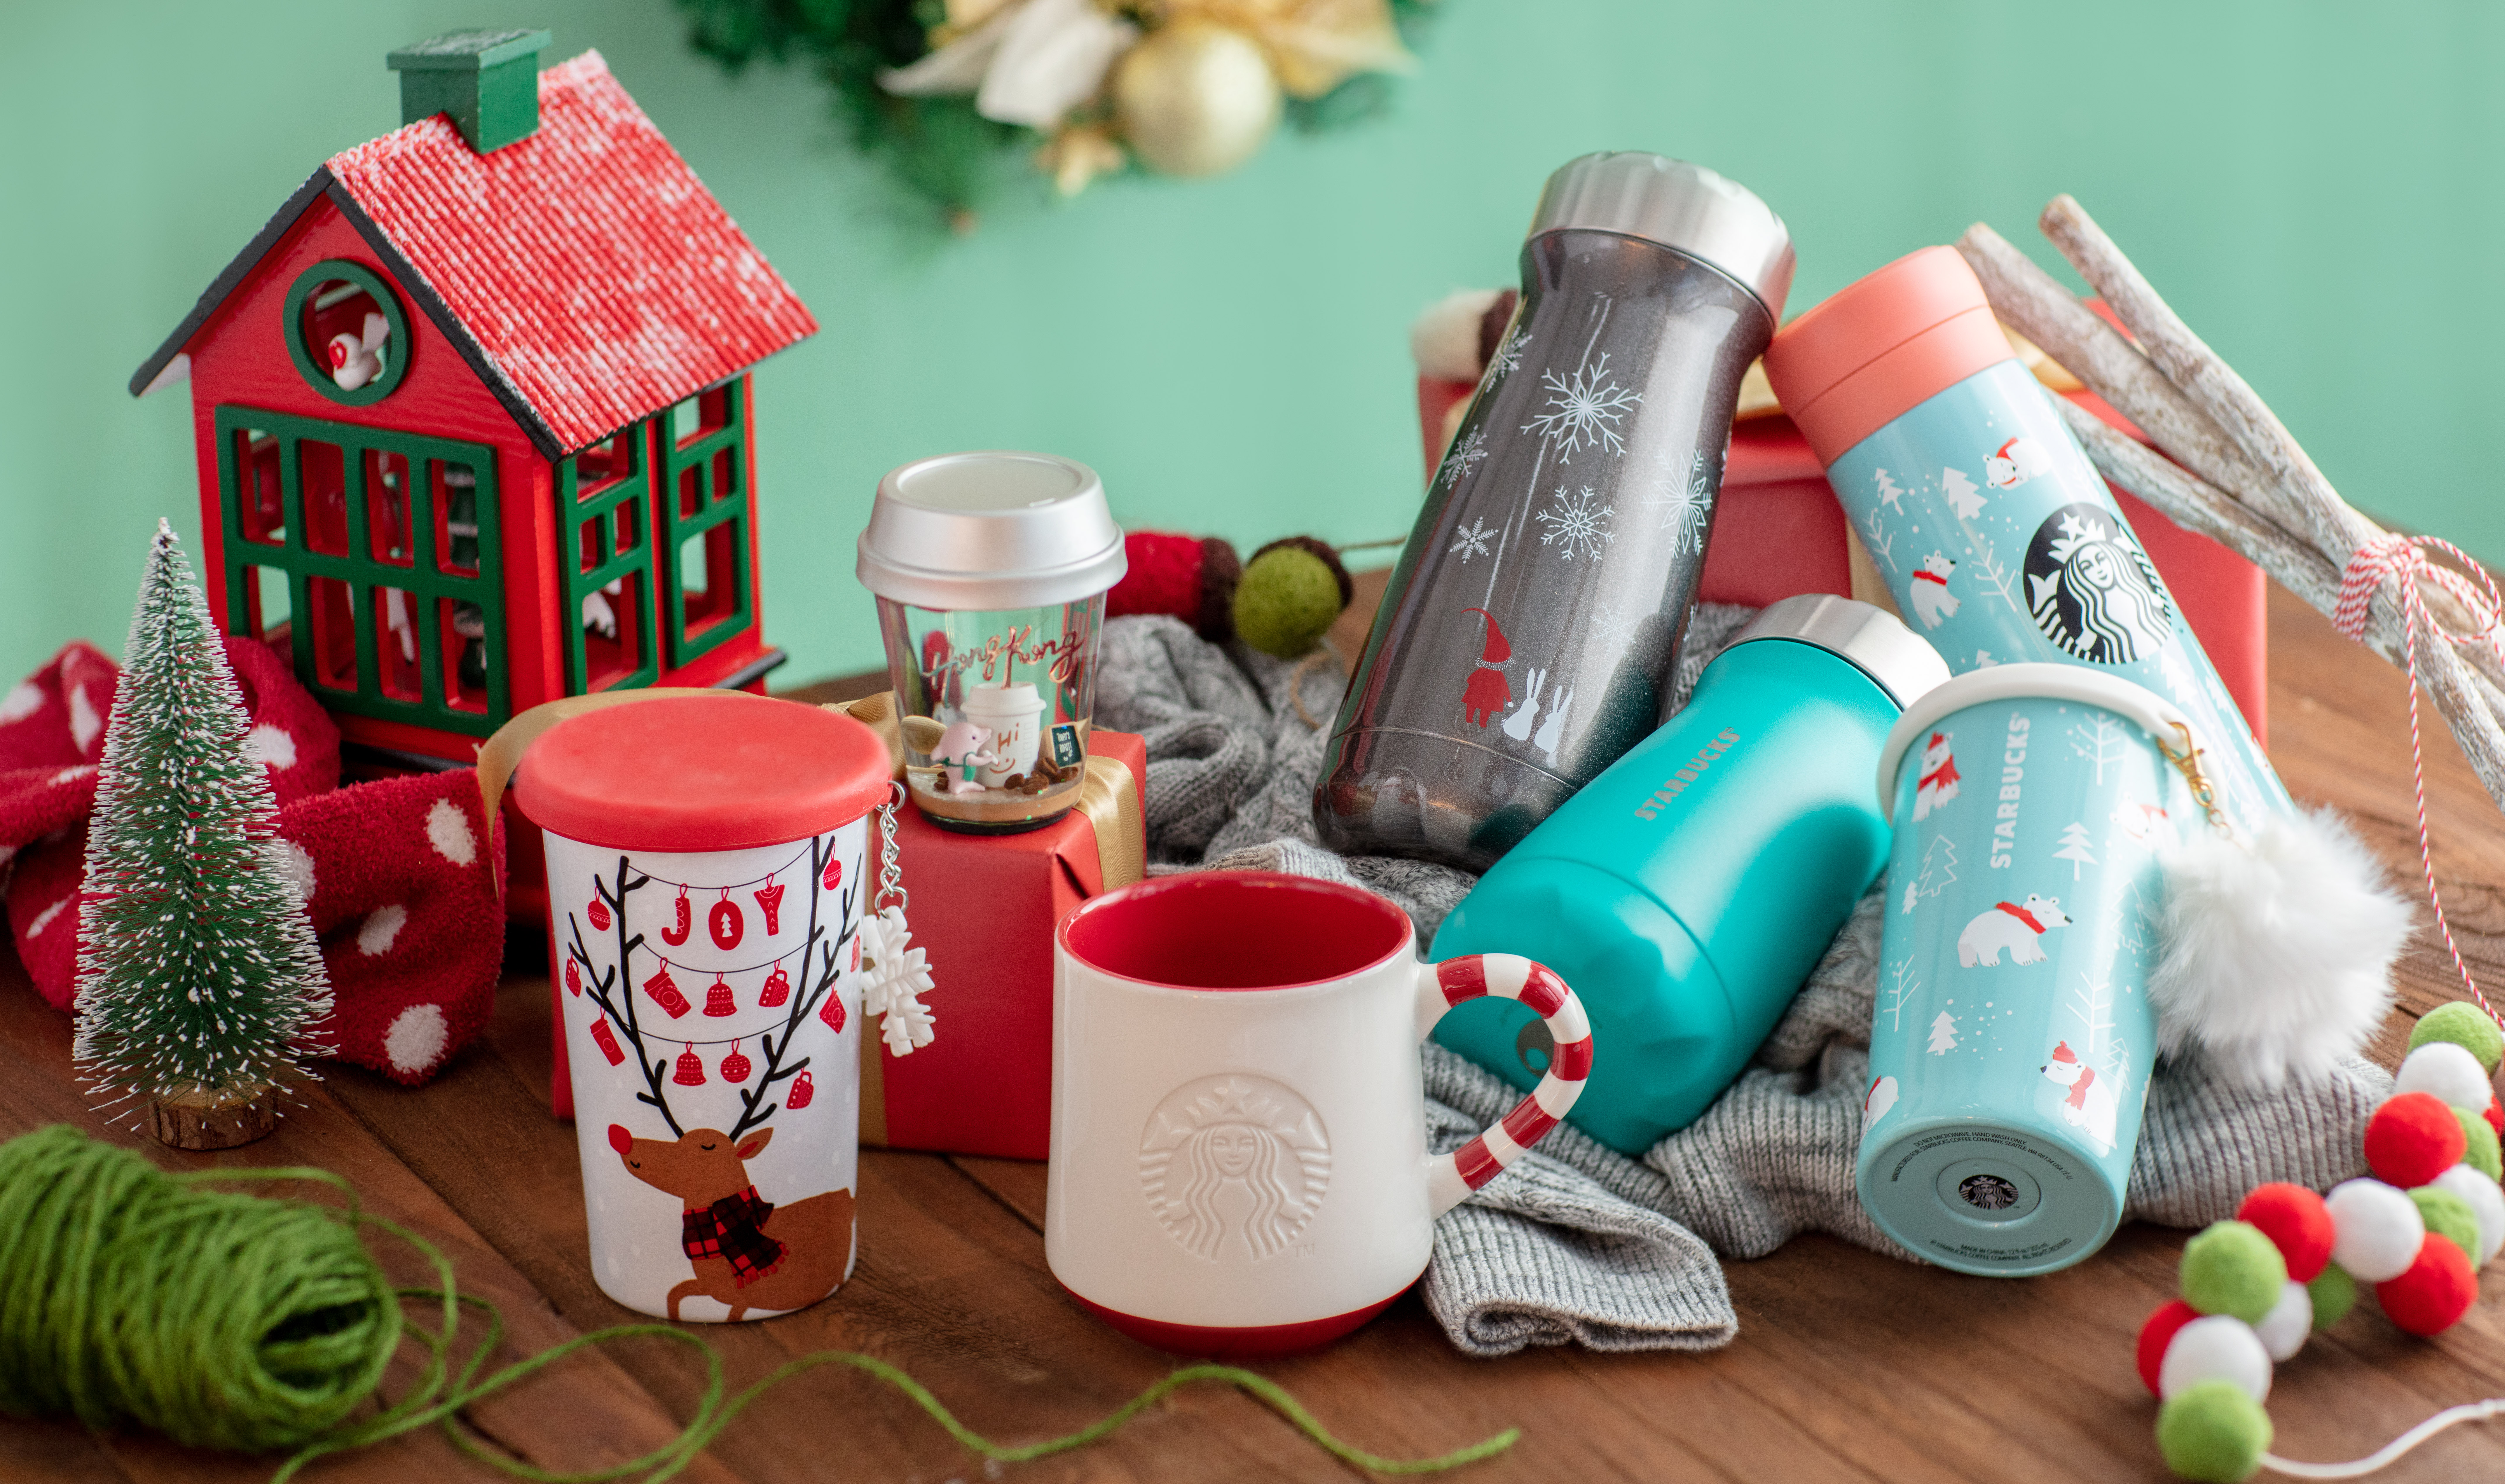 Sprinkle Of Snow Shimmer Of Gold Starbucks Holiday Gifts